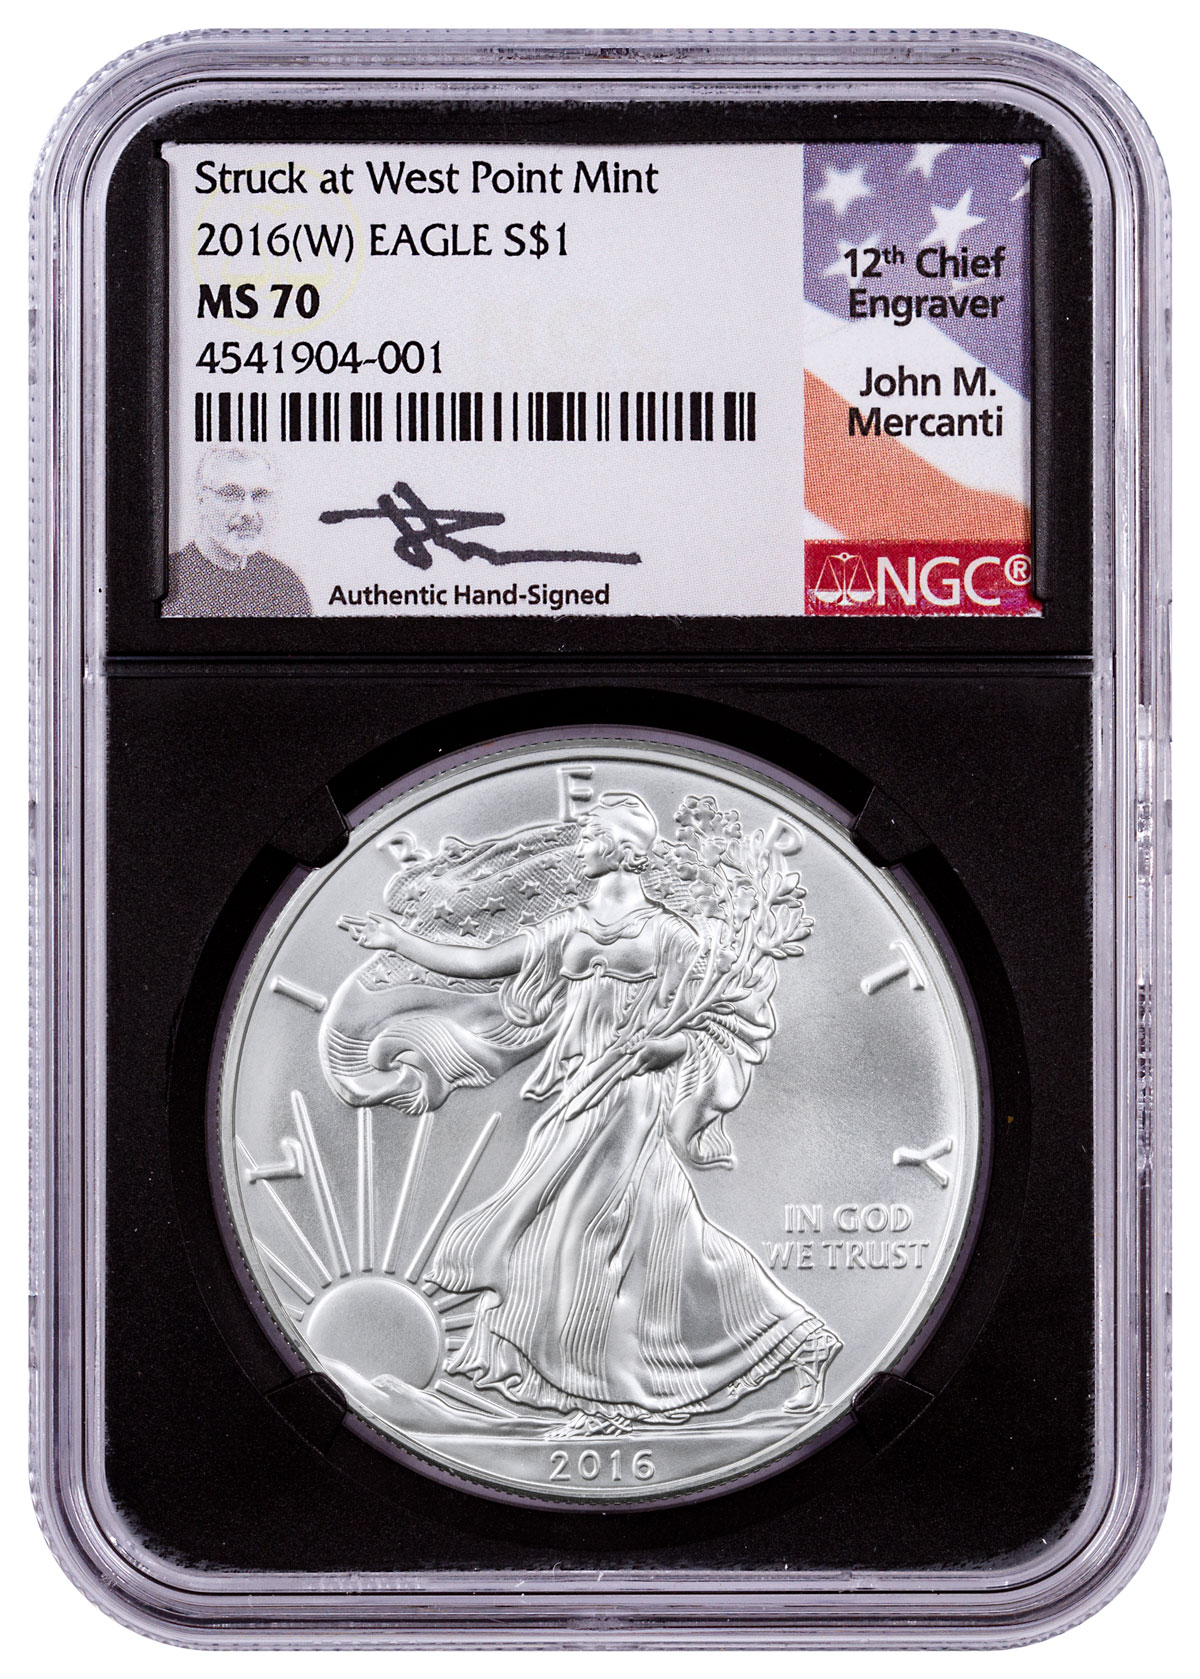 2016 W Silver Eagle Struck At West Point Ngc Ms70 Black Core Mercanti Sku46855